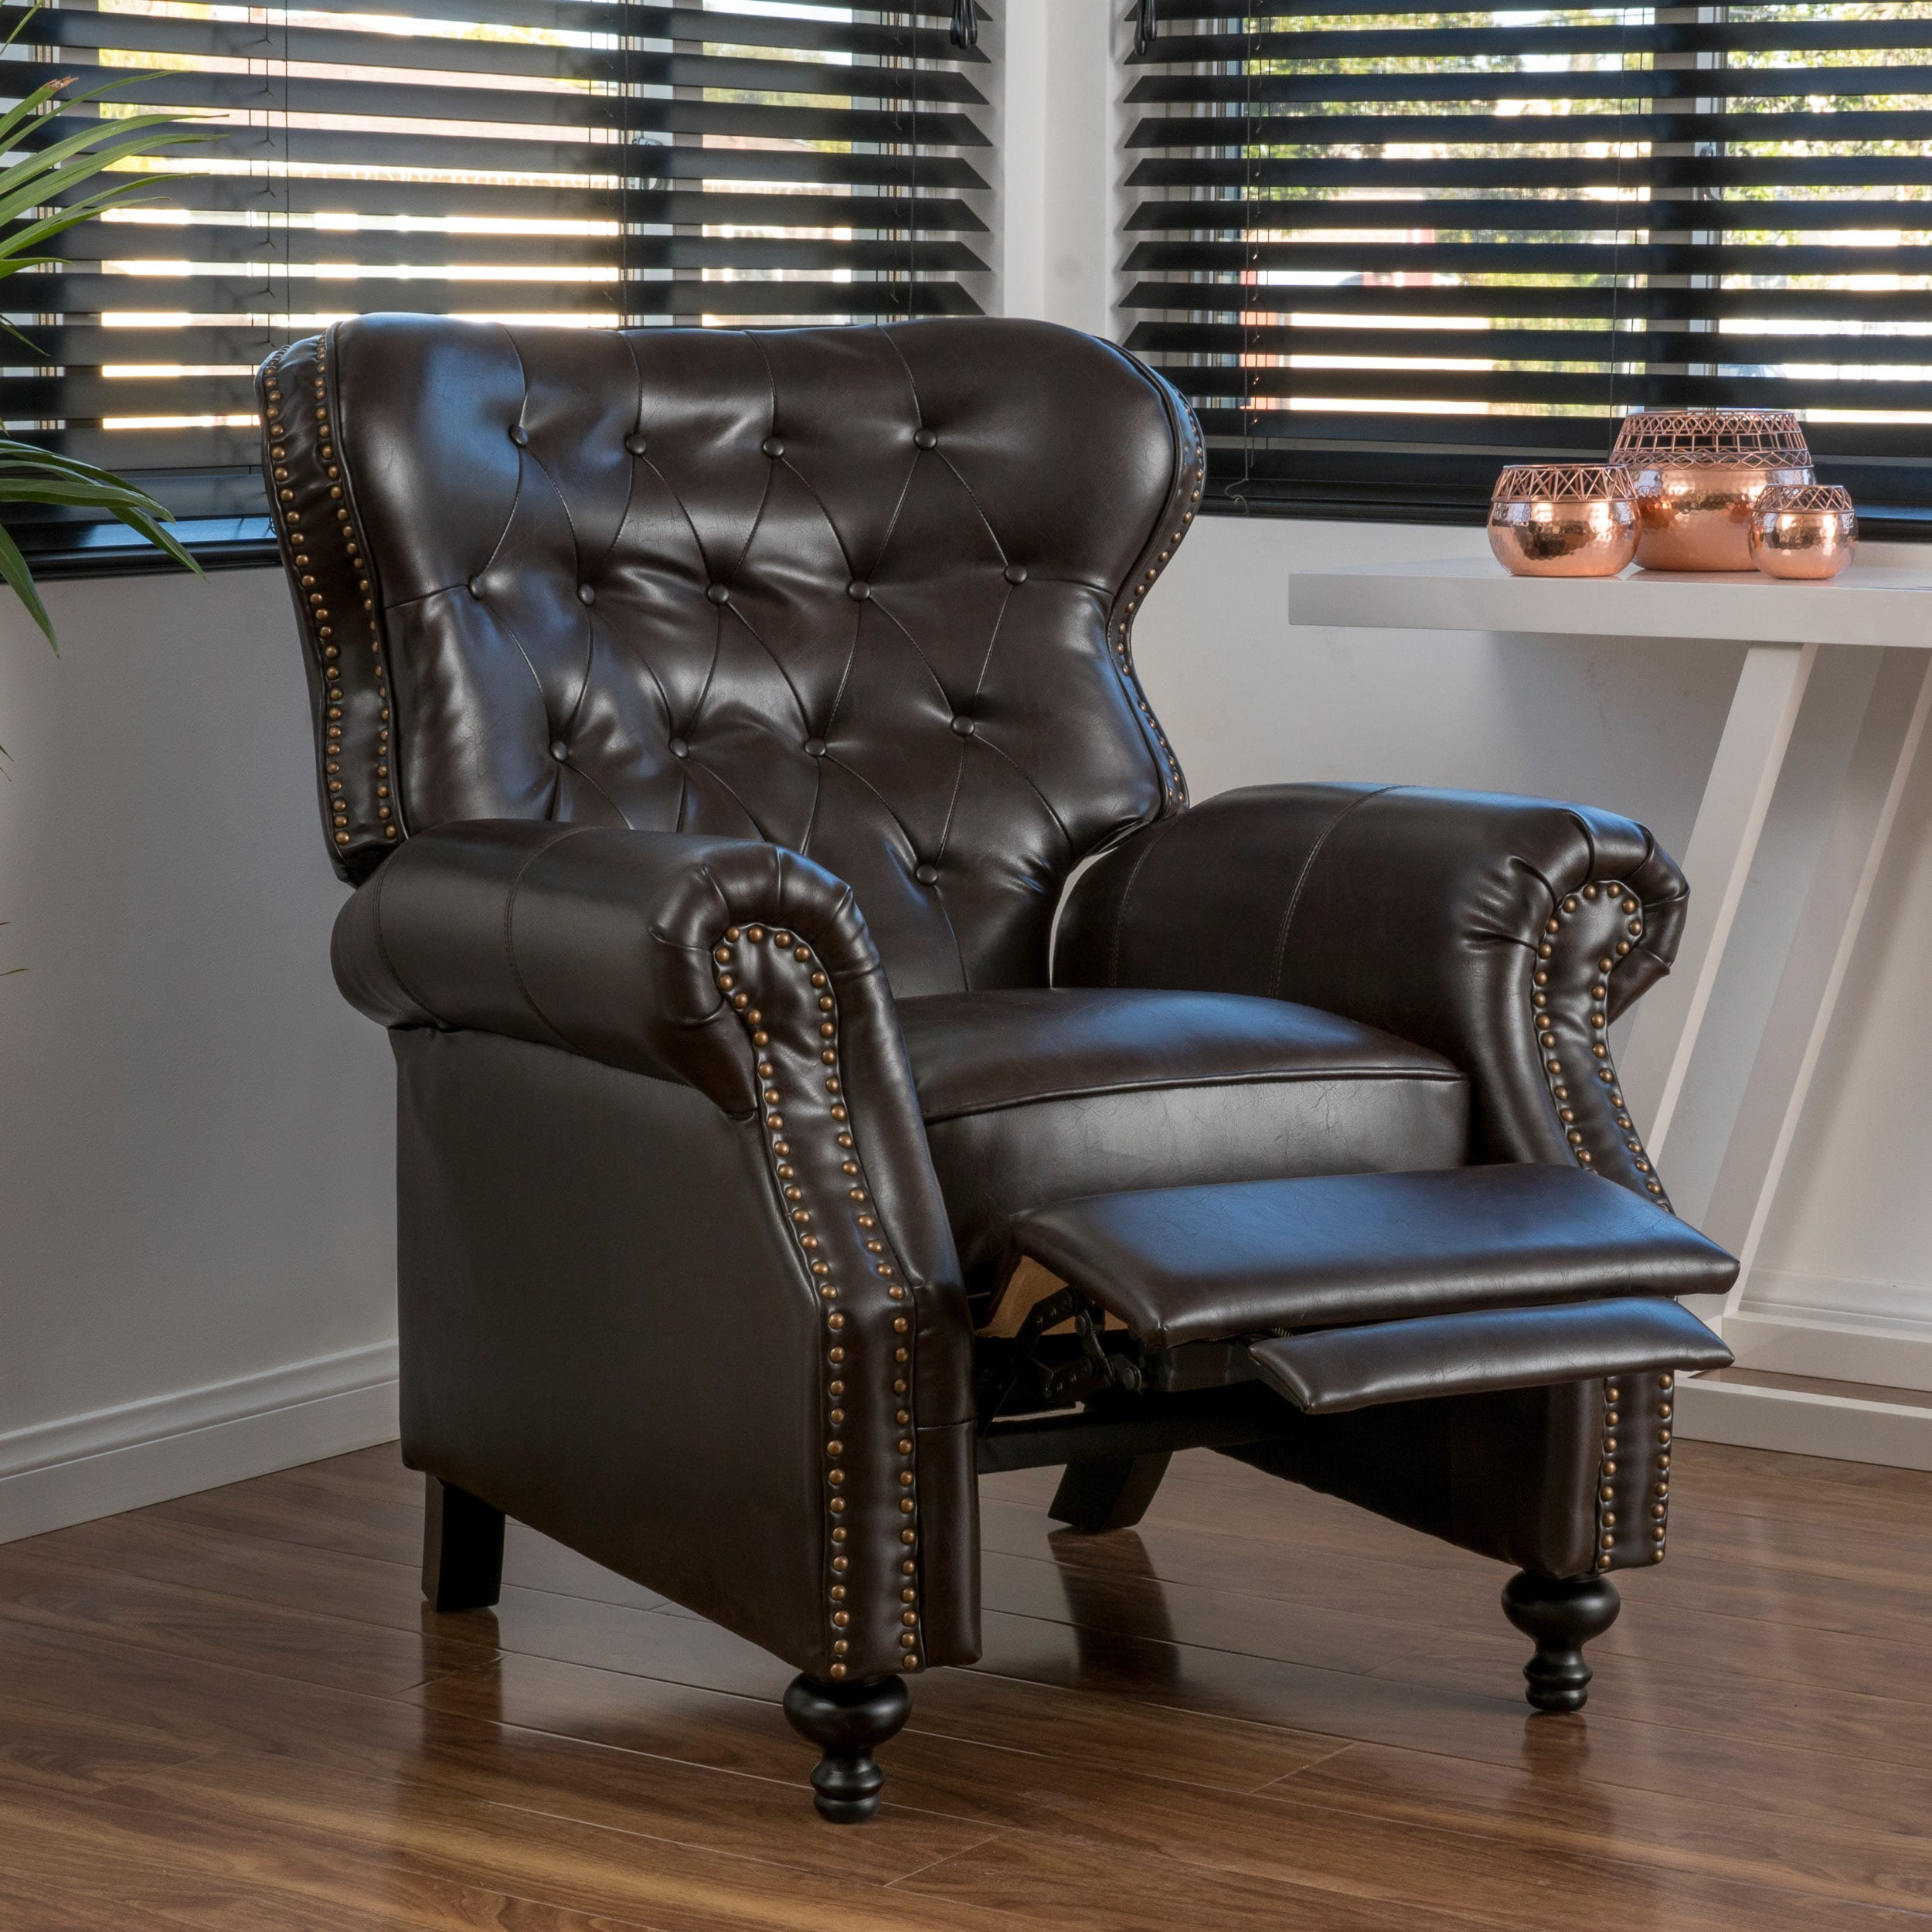 Walder Bonded Leather Recliner Club Chair By Christopher Knight Home On Free Shipping Today 11104243